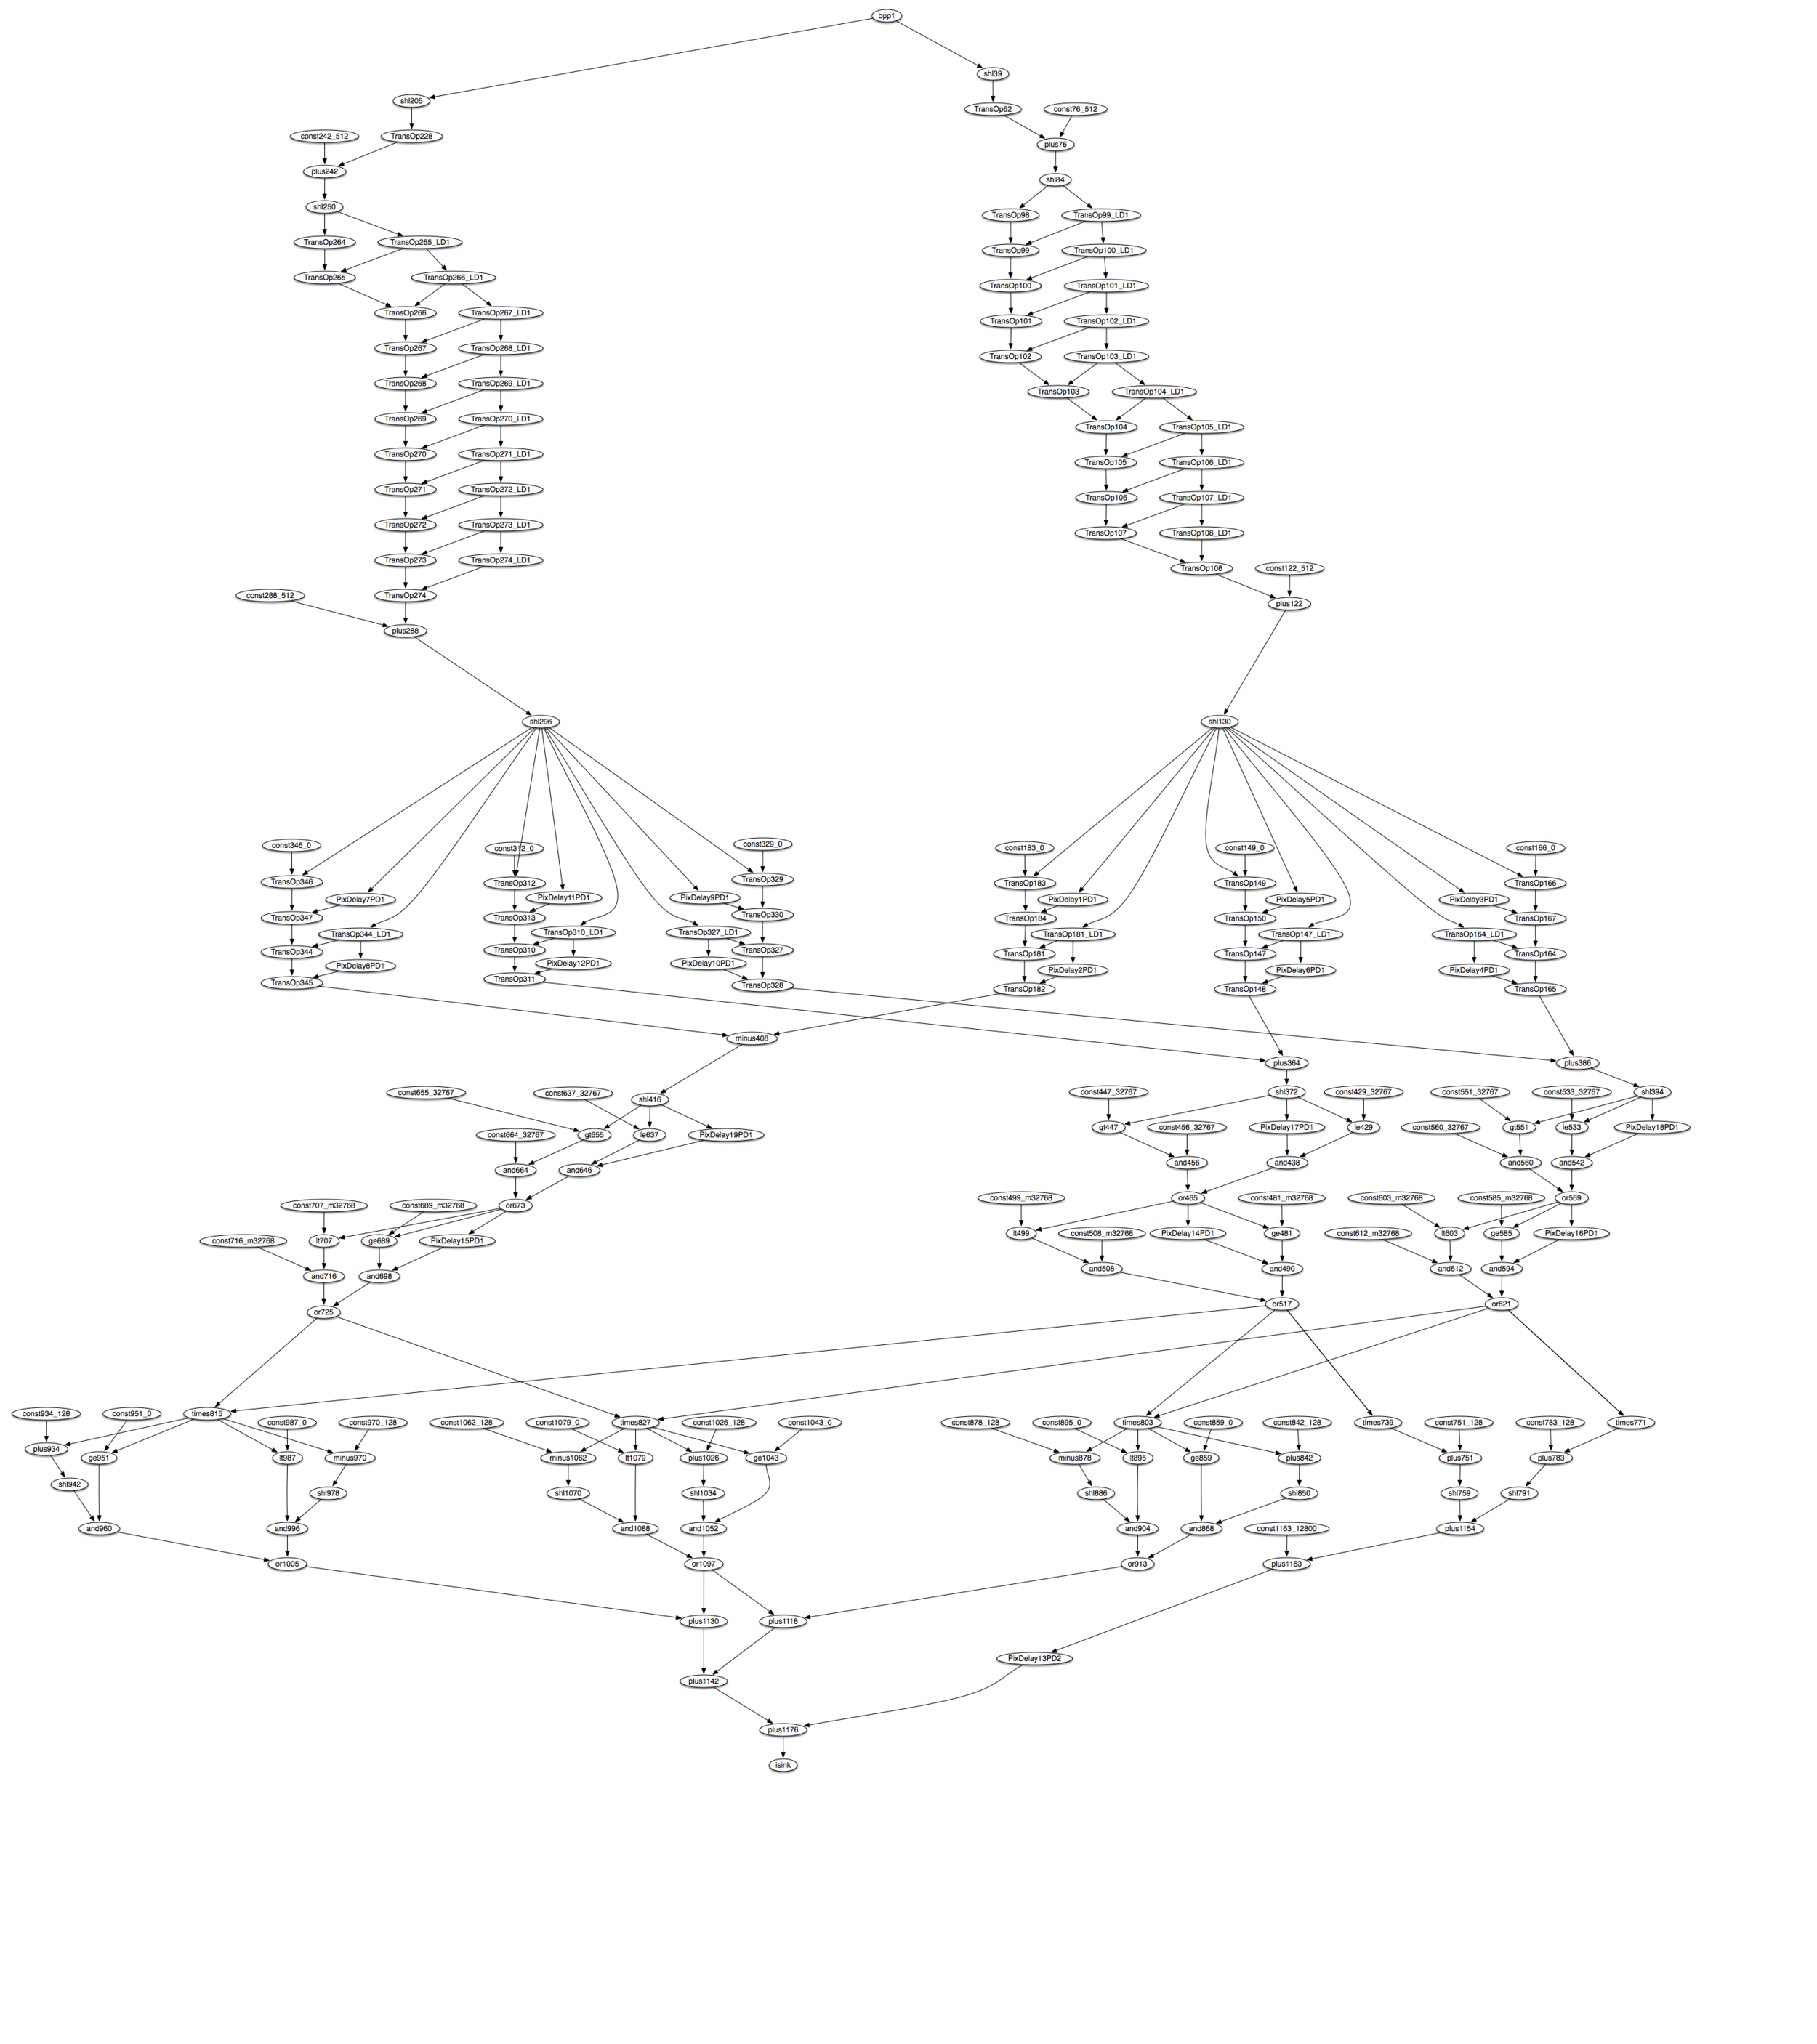 Example Image Processing Flow Graph